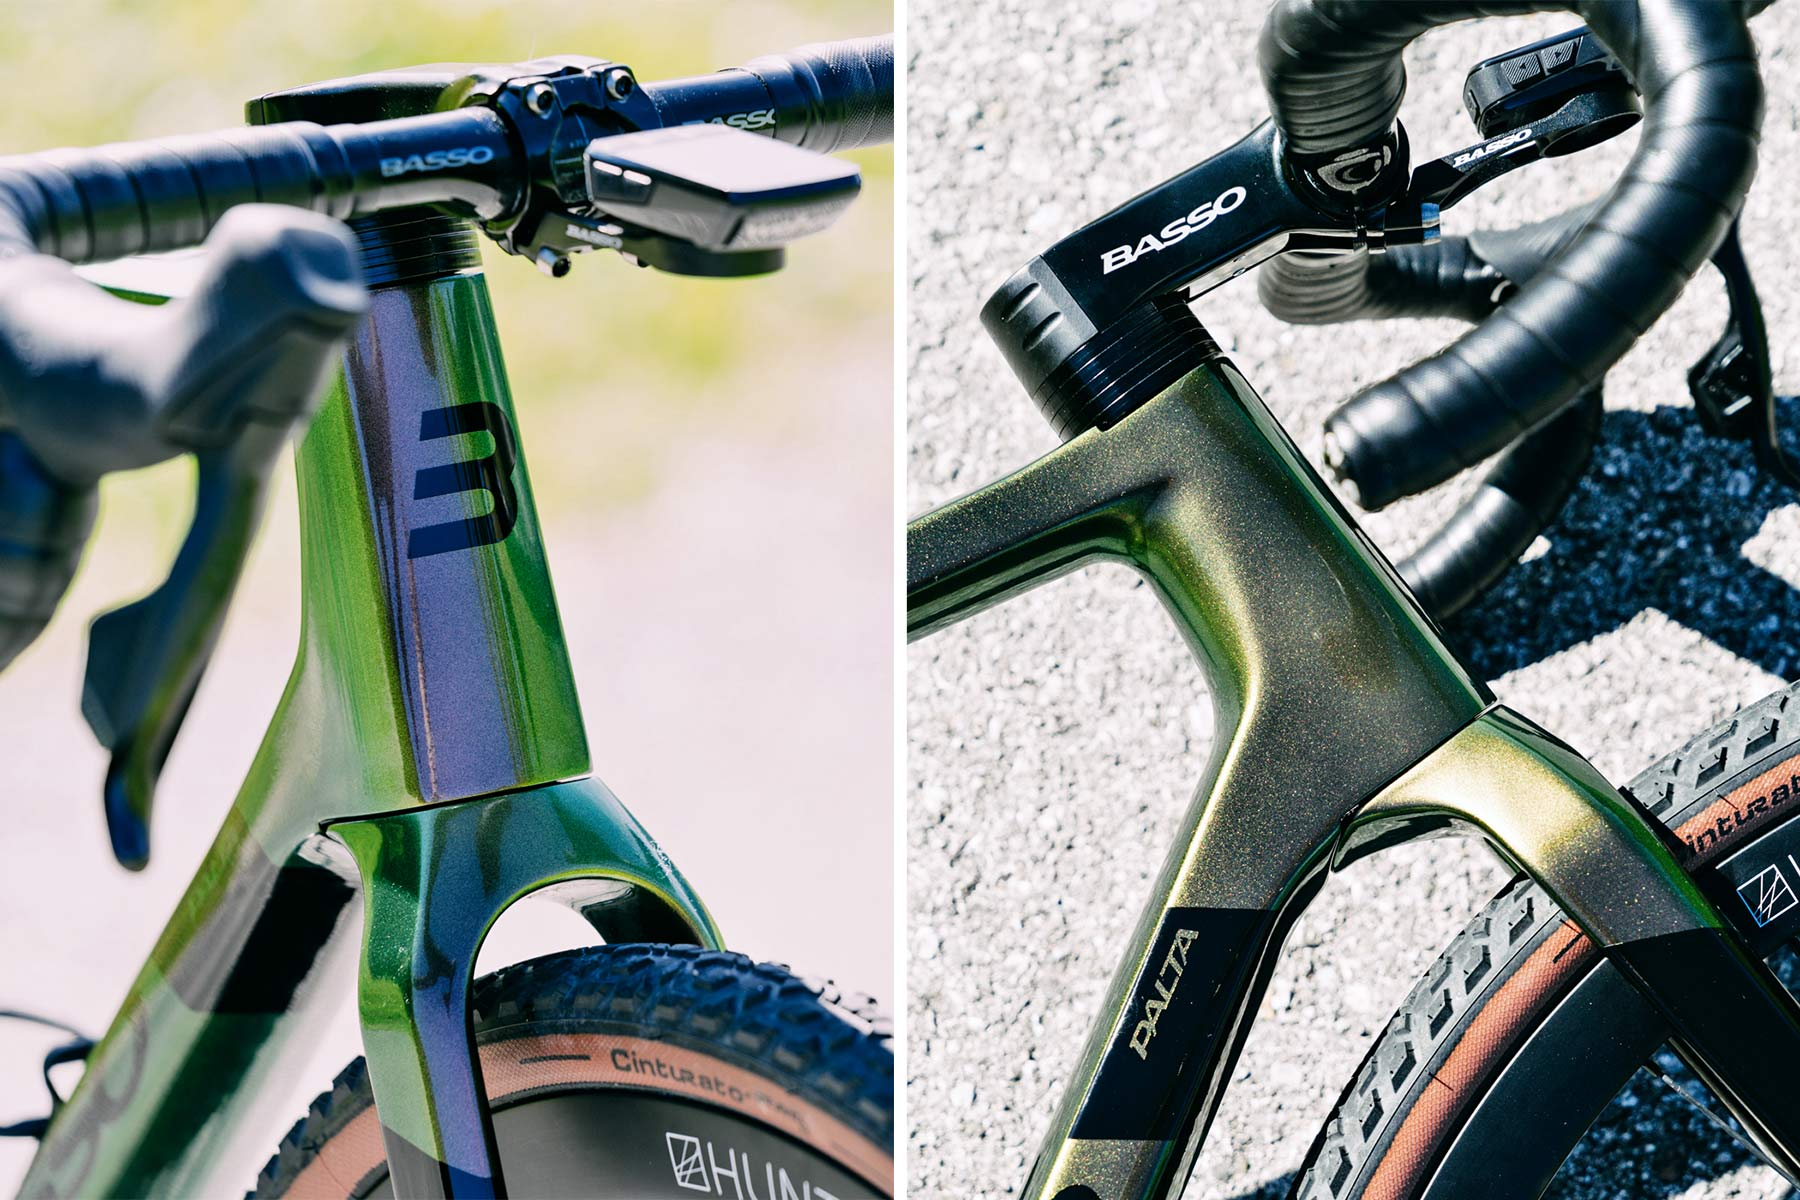 2022 Basso Palta II carbon gravel bike review made-in-Italy, photo by Francesco Bonato,front end headtube